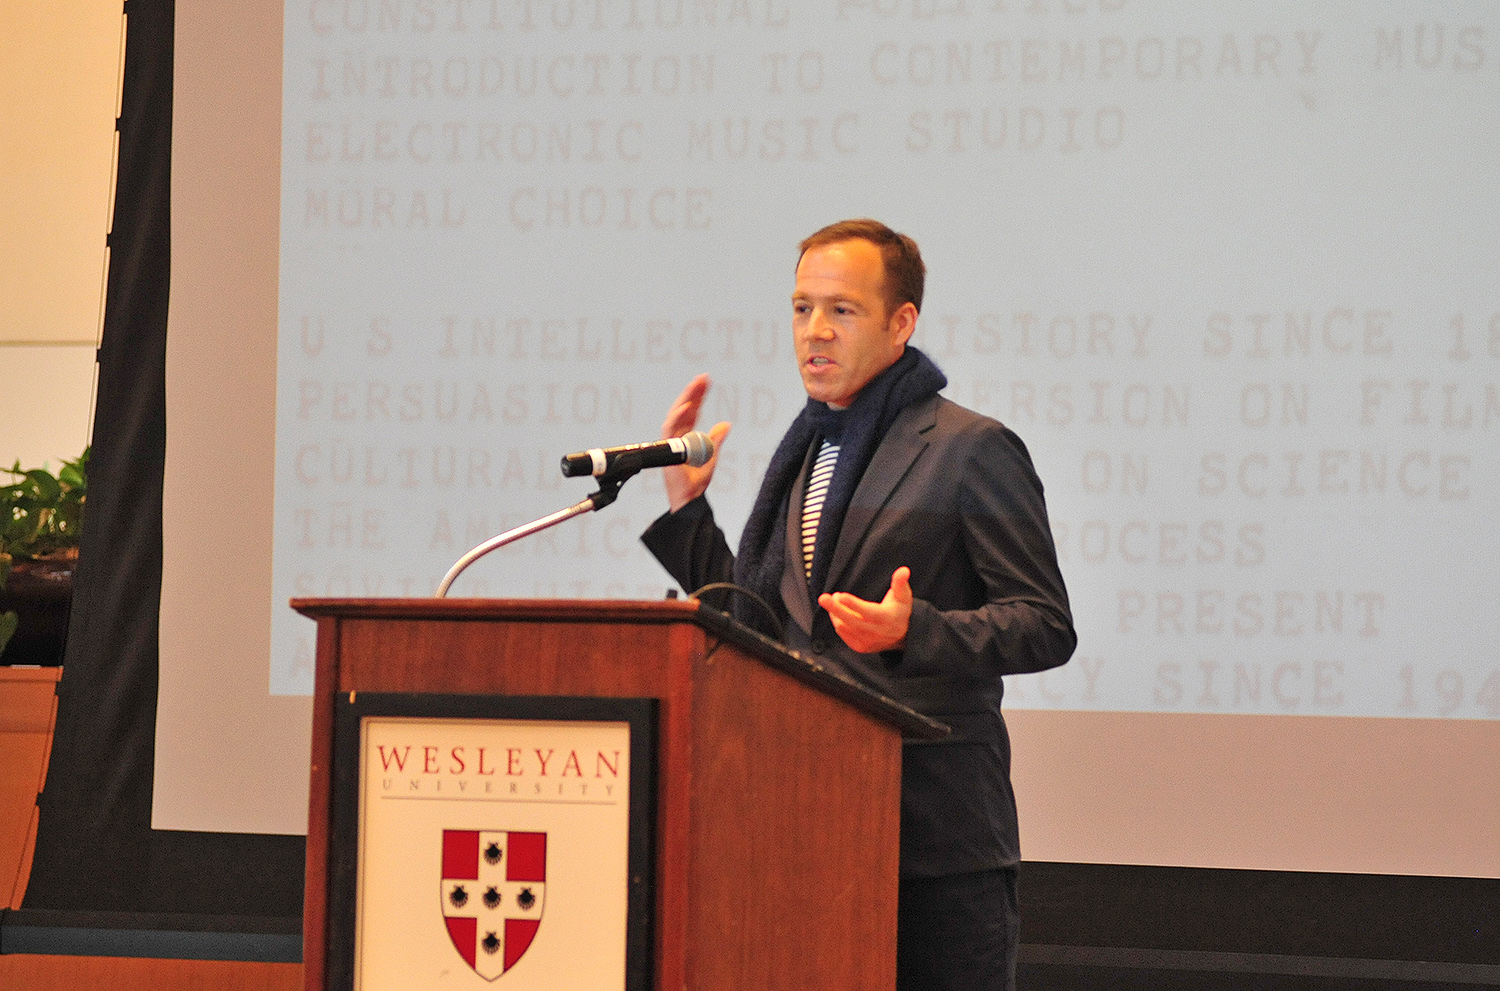 "Luke Wood '91, president of Beats by Dr. Dre, delivered the WesFest Alumni Keynote Speech on April 13 titled ""Between Thought and Expression: My Wesleyan Education."" Beats by Dr. Dre is a premium brand of headphones and speakers that was acquired by Apple in 2014. A producer, guitarist, and music industry veteran with more than 20 years of experience, Wood has been involved with Beats since its early days, officially joining the company in 2011. Wood began his career with Geffen Records in 1991 as a director of publicity, representing such bands as Nirvana and Sonic Youth. Luke Wood '91, president of Beats by Dr. Dre, delivered the WesFest Alumni Keynote Speech on April 13 titled ""Between Thought and Expression: My Wesleyan Education."" Beats by Dr. Dre is a premium brand of headphones and speakers that was acquired by Apple in 2014. A producer, guitarist, and music industry veteran with more than 20 years of experience, Wood has been involved with Beats since its early days, officially joining the company in 2011. Wood began his career with Geffen Records in 1991 as a director of publicity, representing such bands as Nirvana and Sonic Youth."